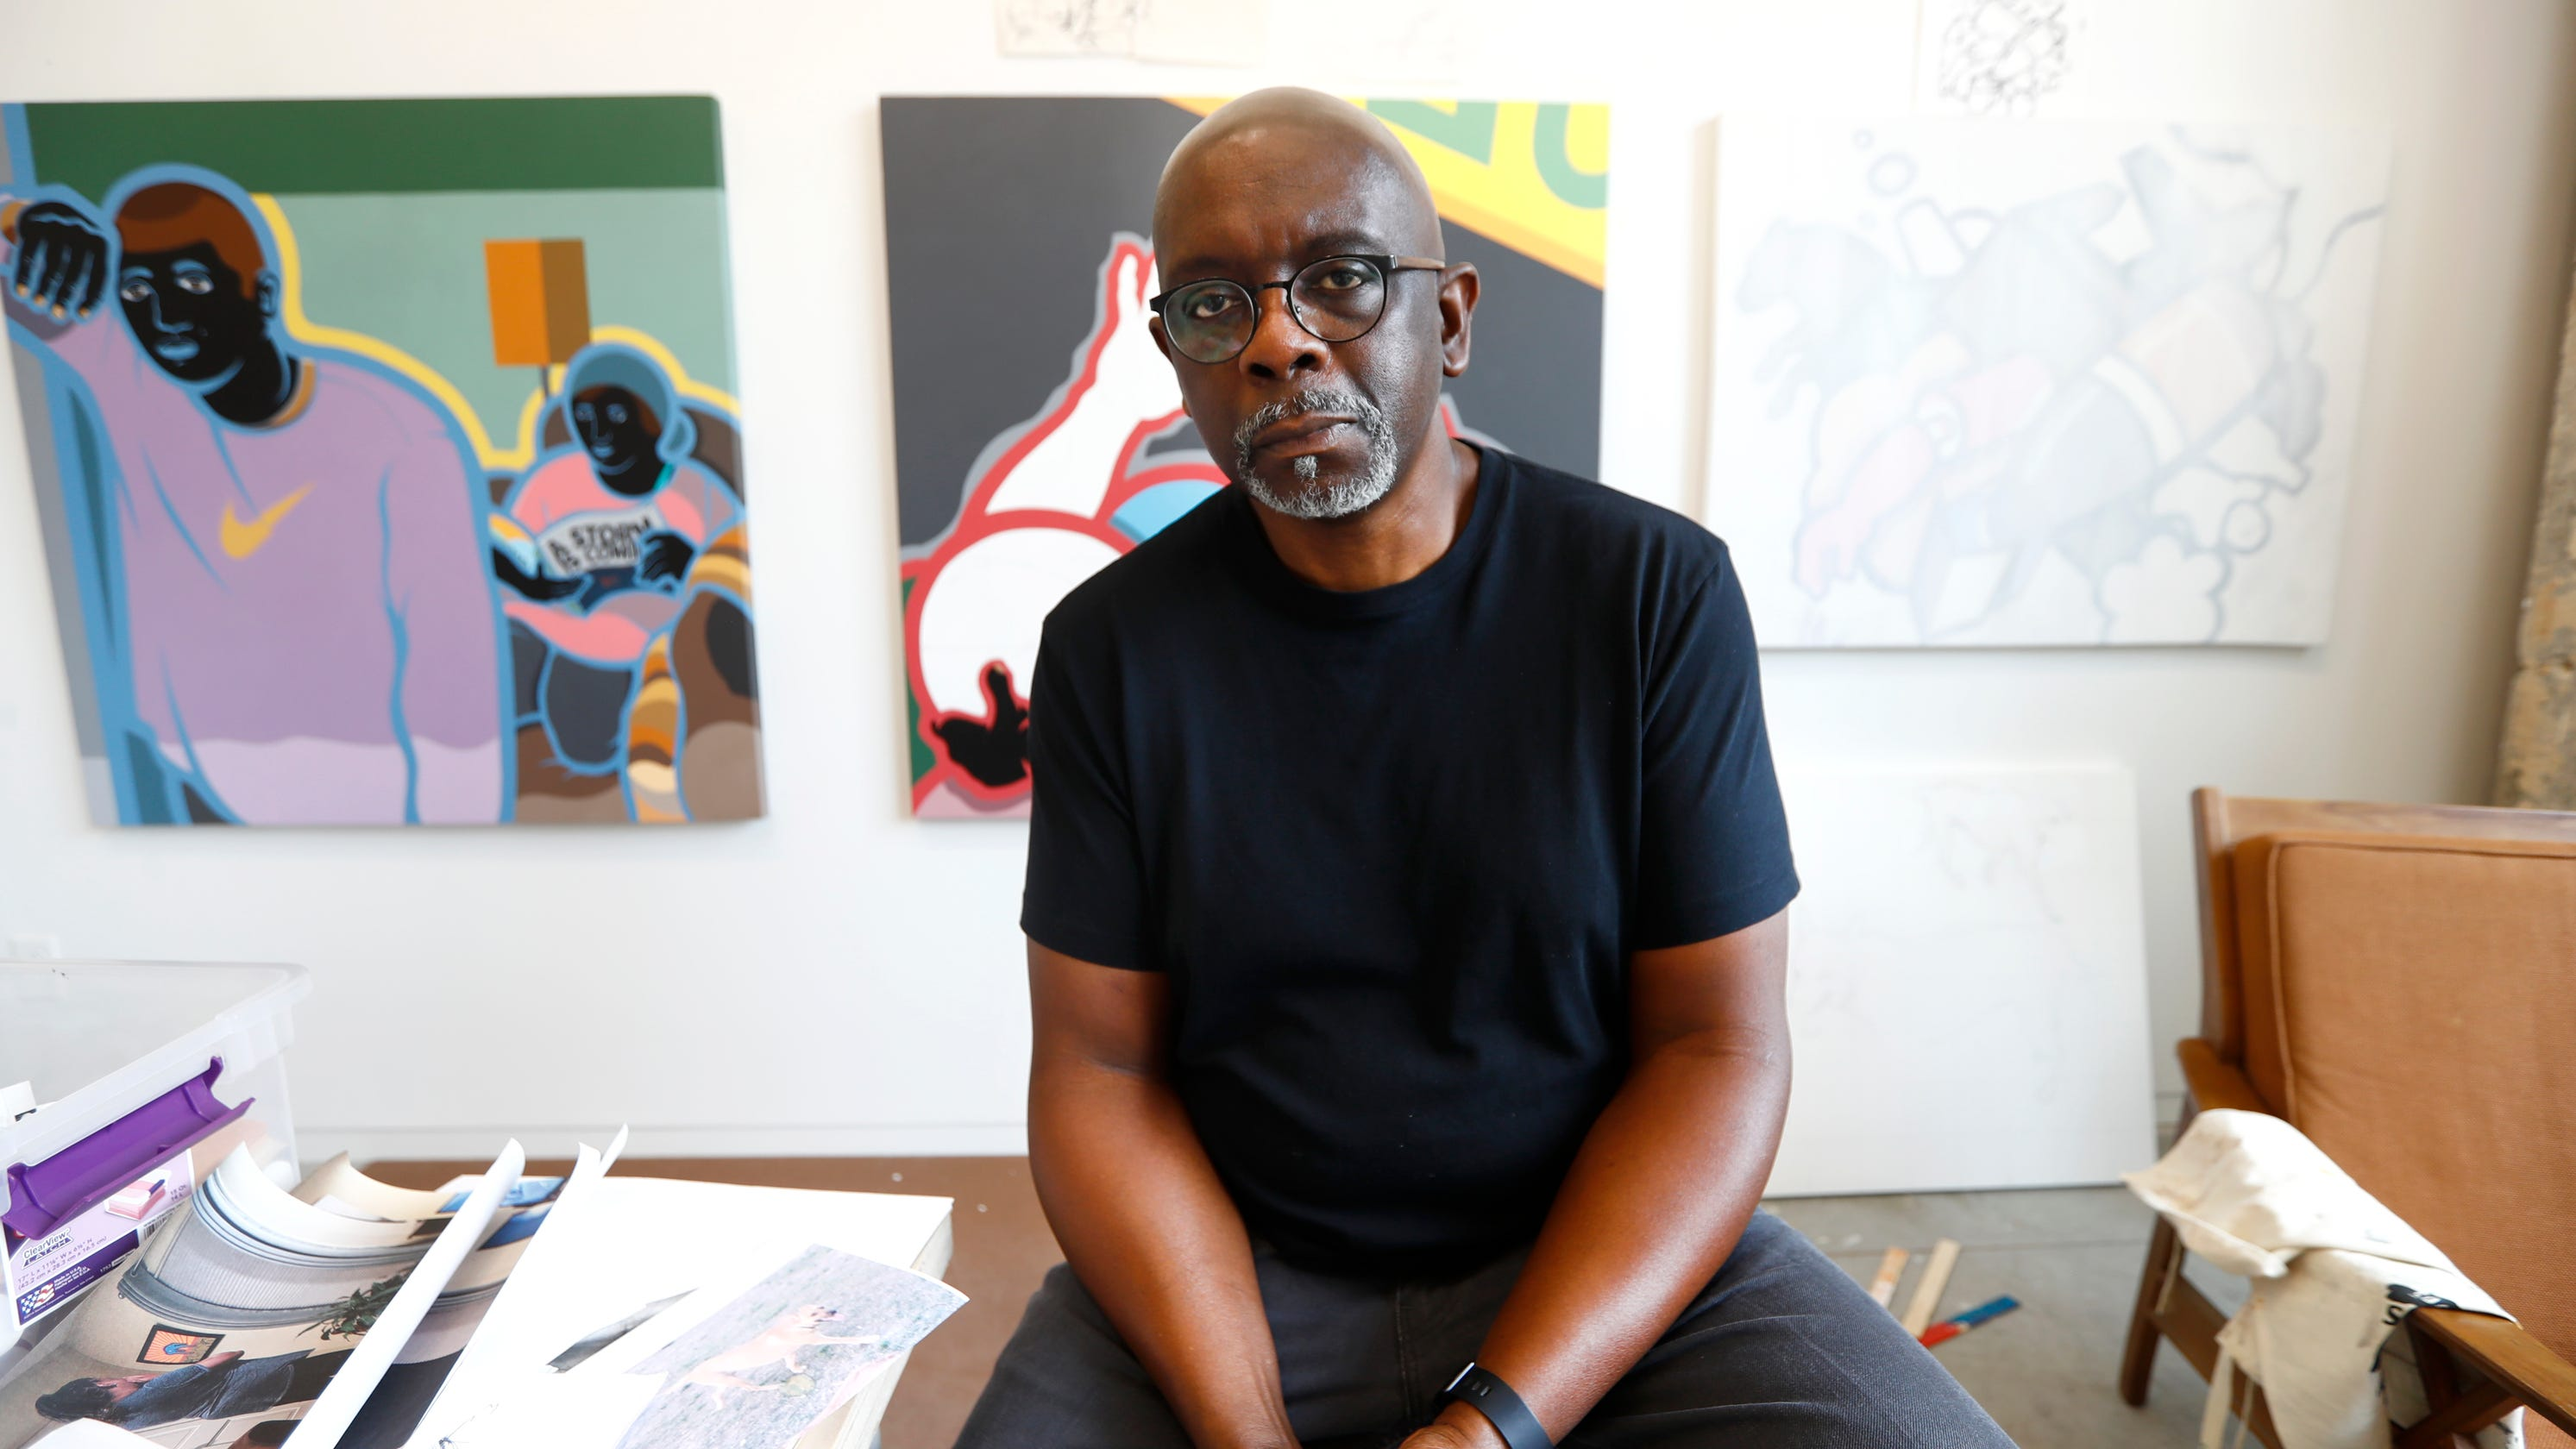 Memphis painter Carl Moore gives people 'something to talk about'